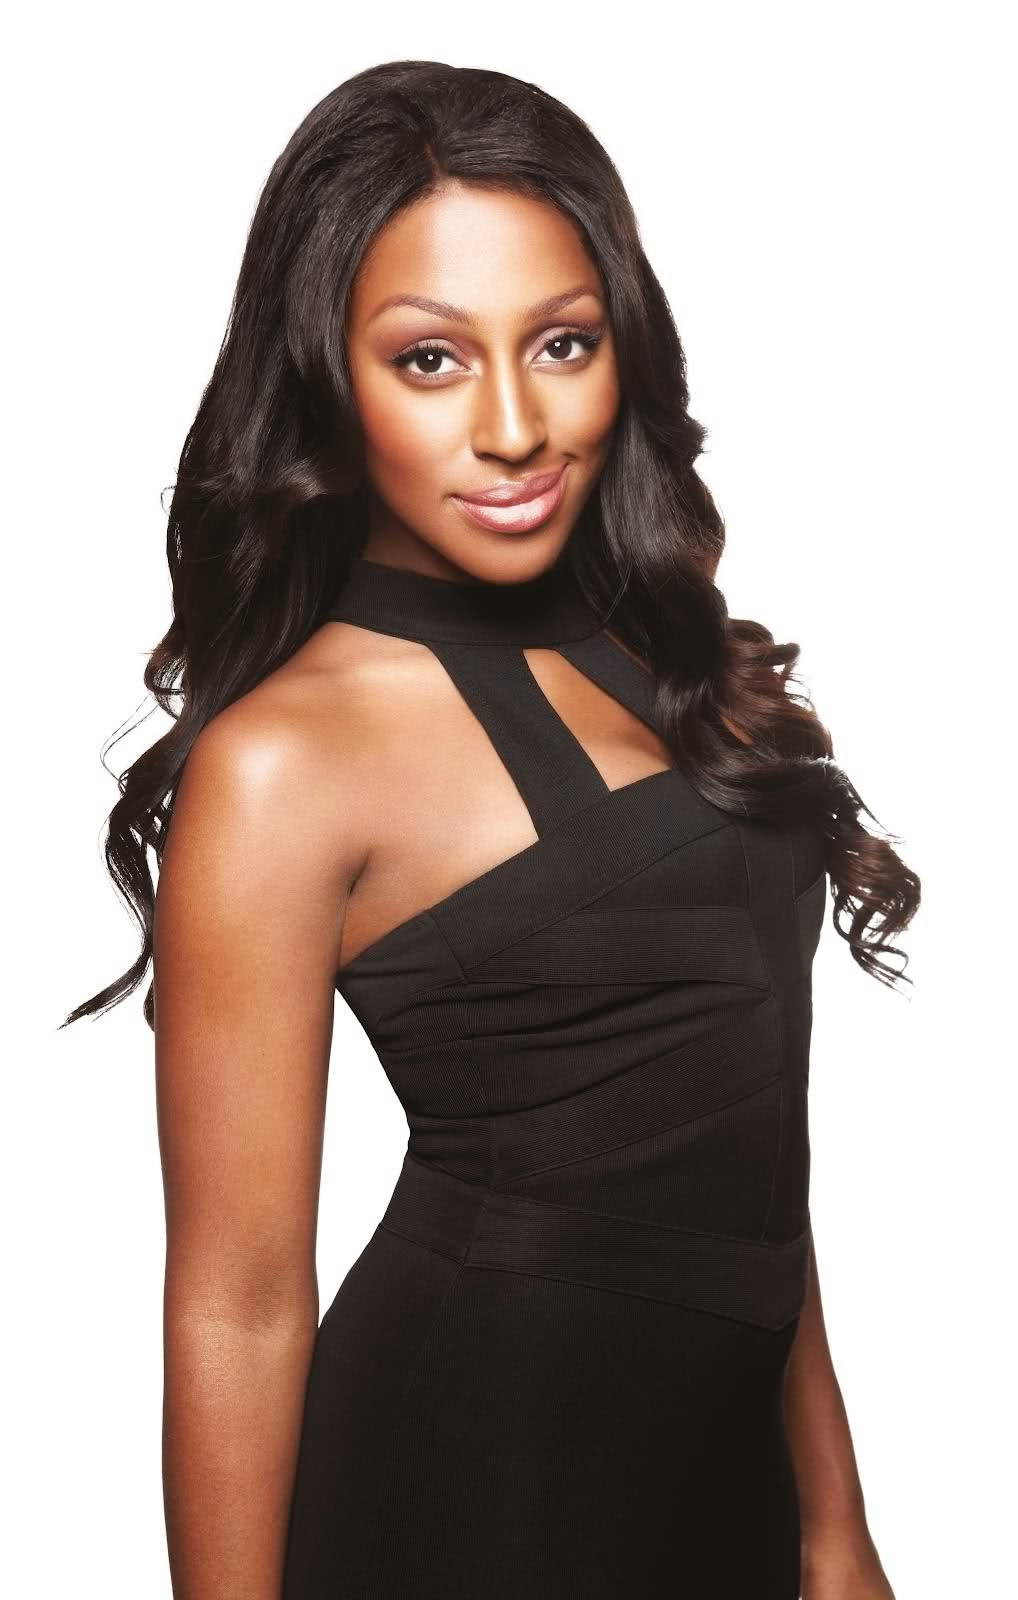 Alexandra burke lyrics hallelujah gospel lyrics ive heard there was a secret chord that david played and it pleased the lord you dont really care for music do you it goes like this hexwebz Image collections